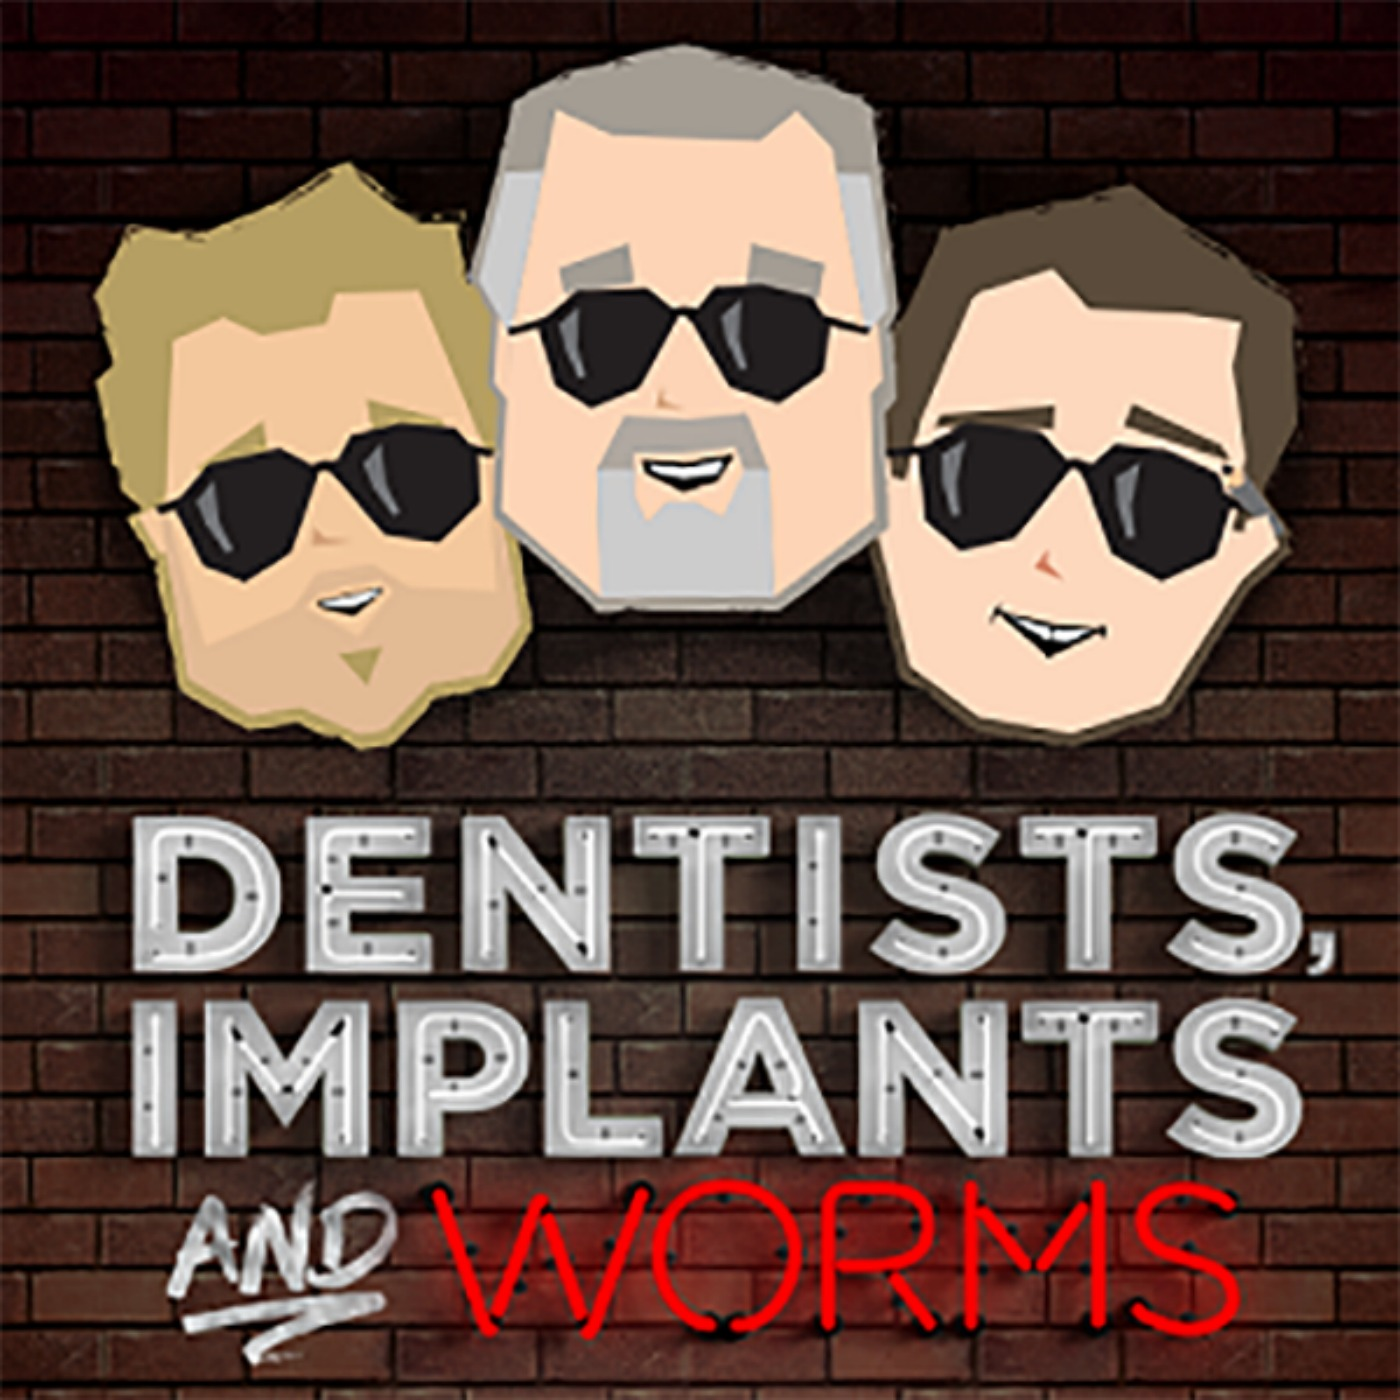 dentists implants and worms logo